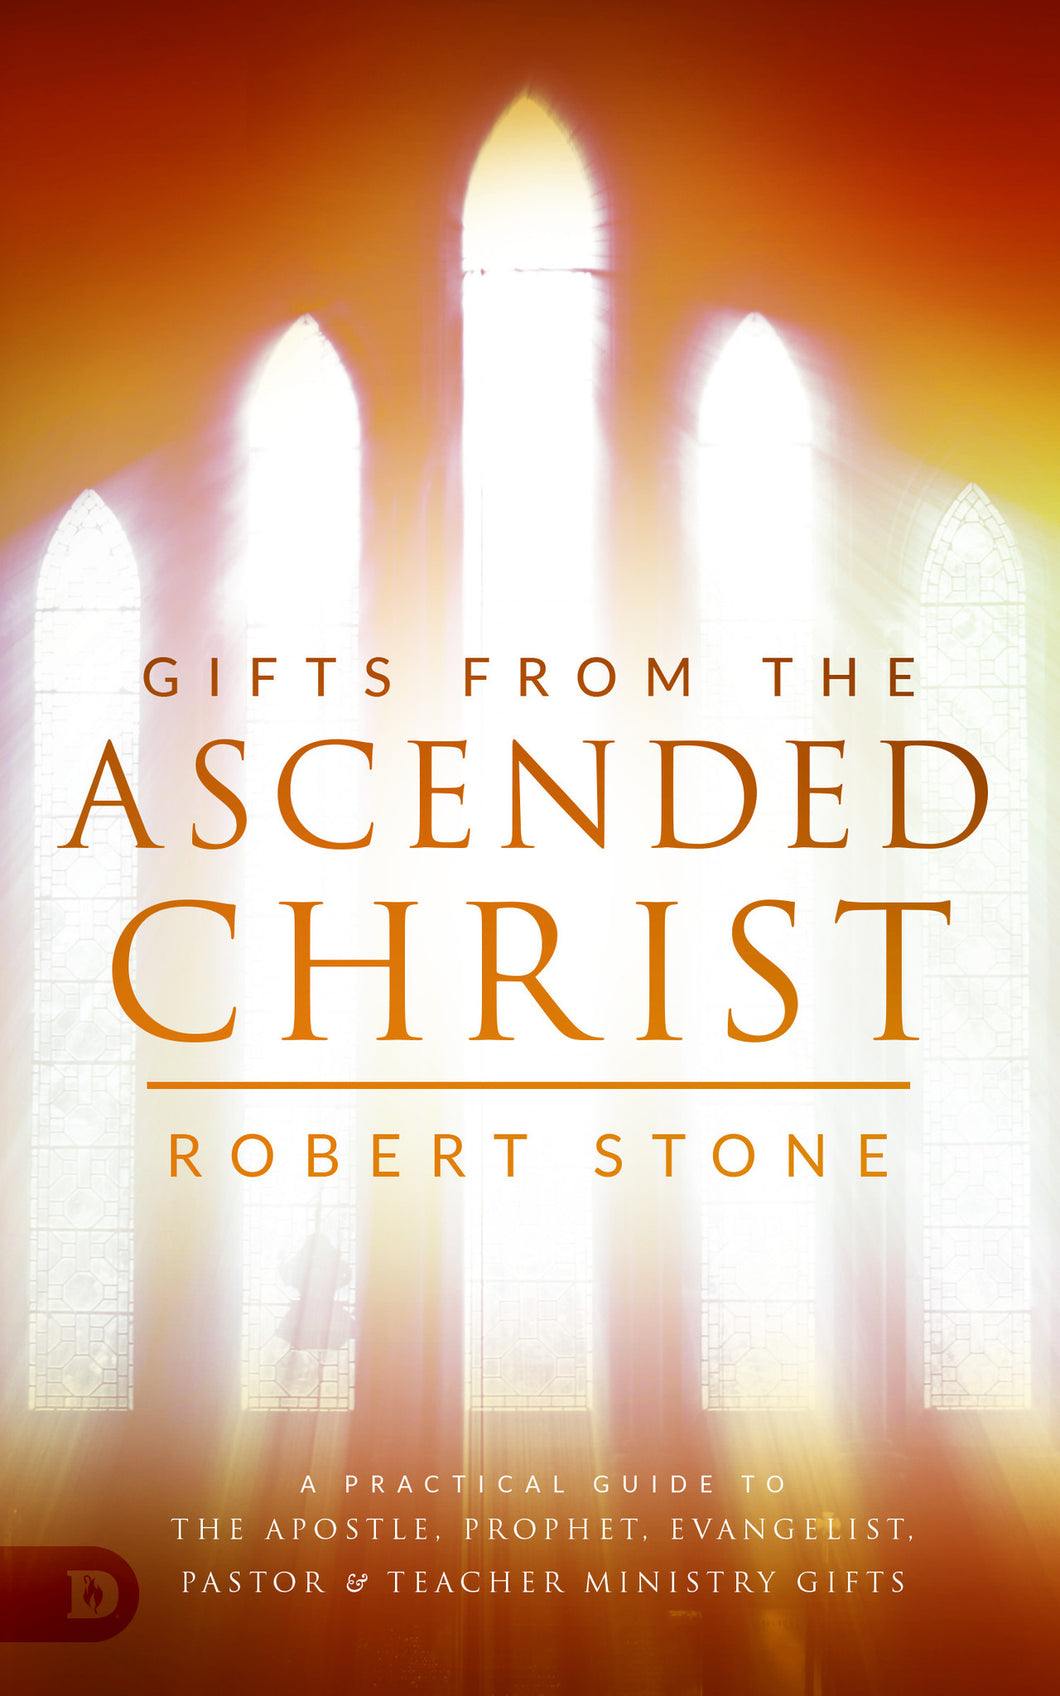 Gifts from the Ascended Christ: A Practical Guide to the Apostle, Prophet, Evangelist, Pastor and Teacher Ministry Gifts Paperback